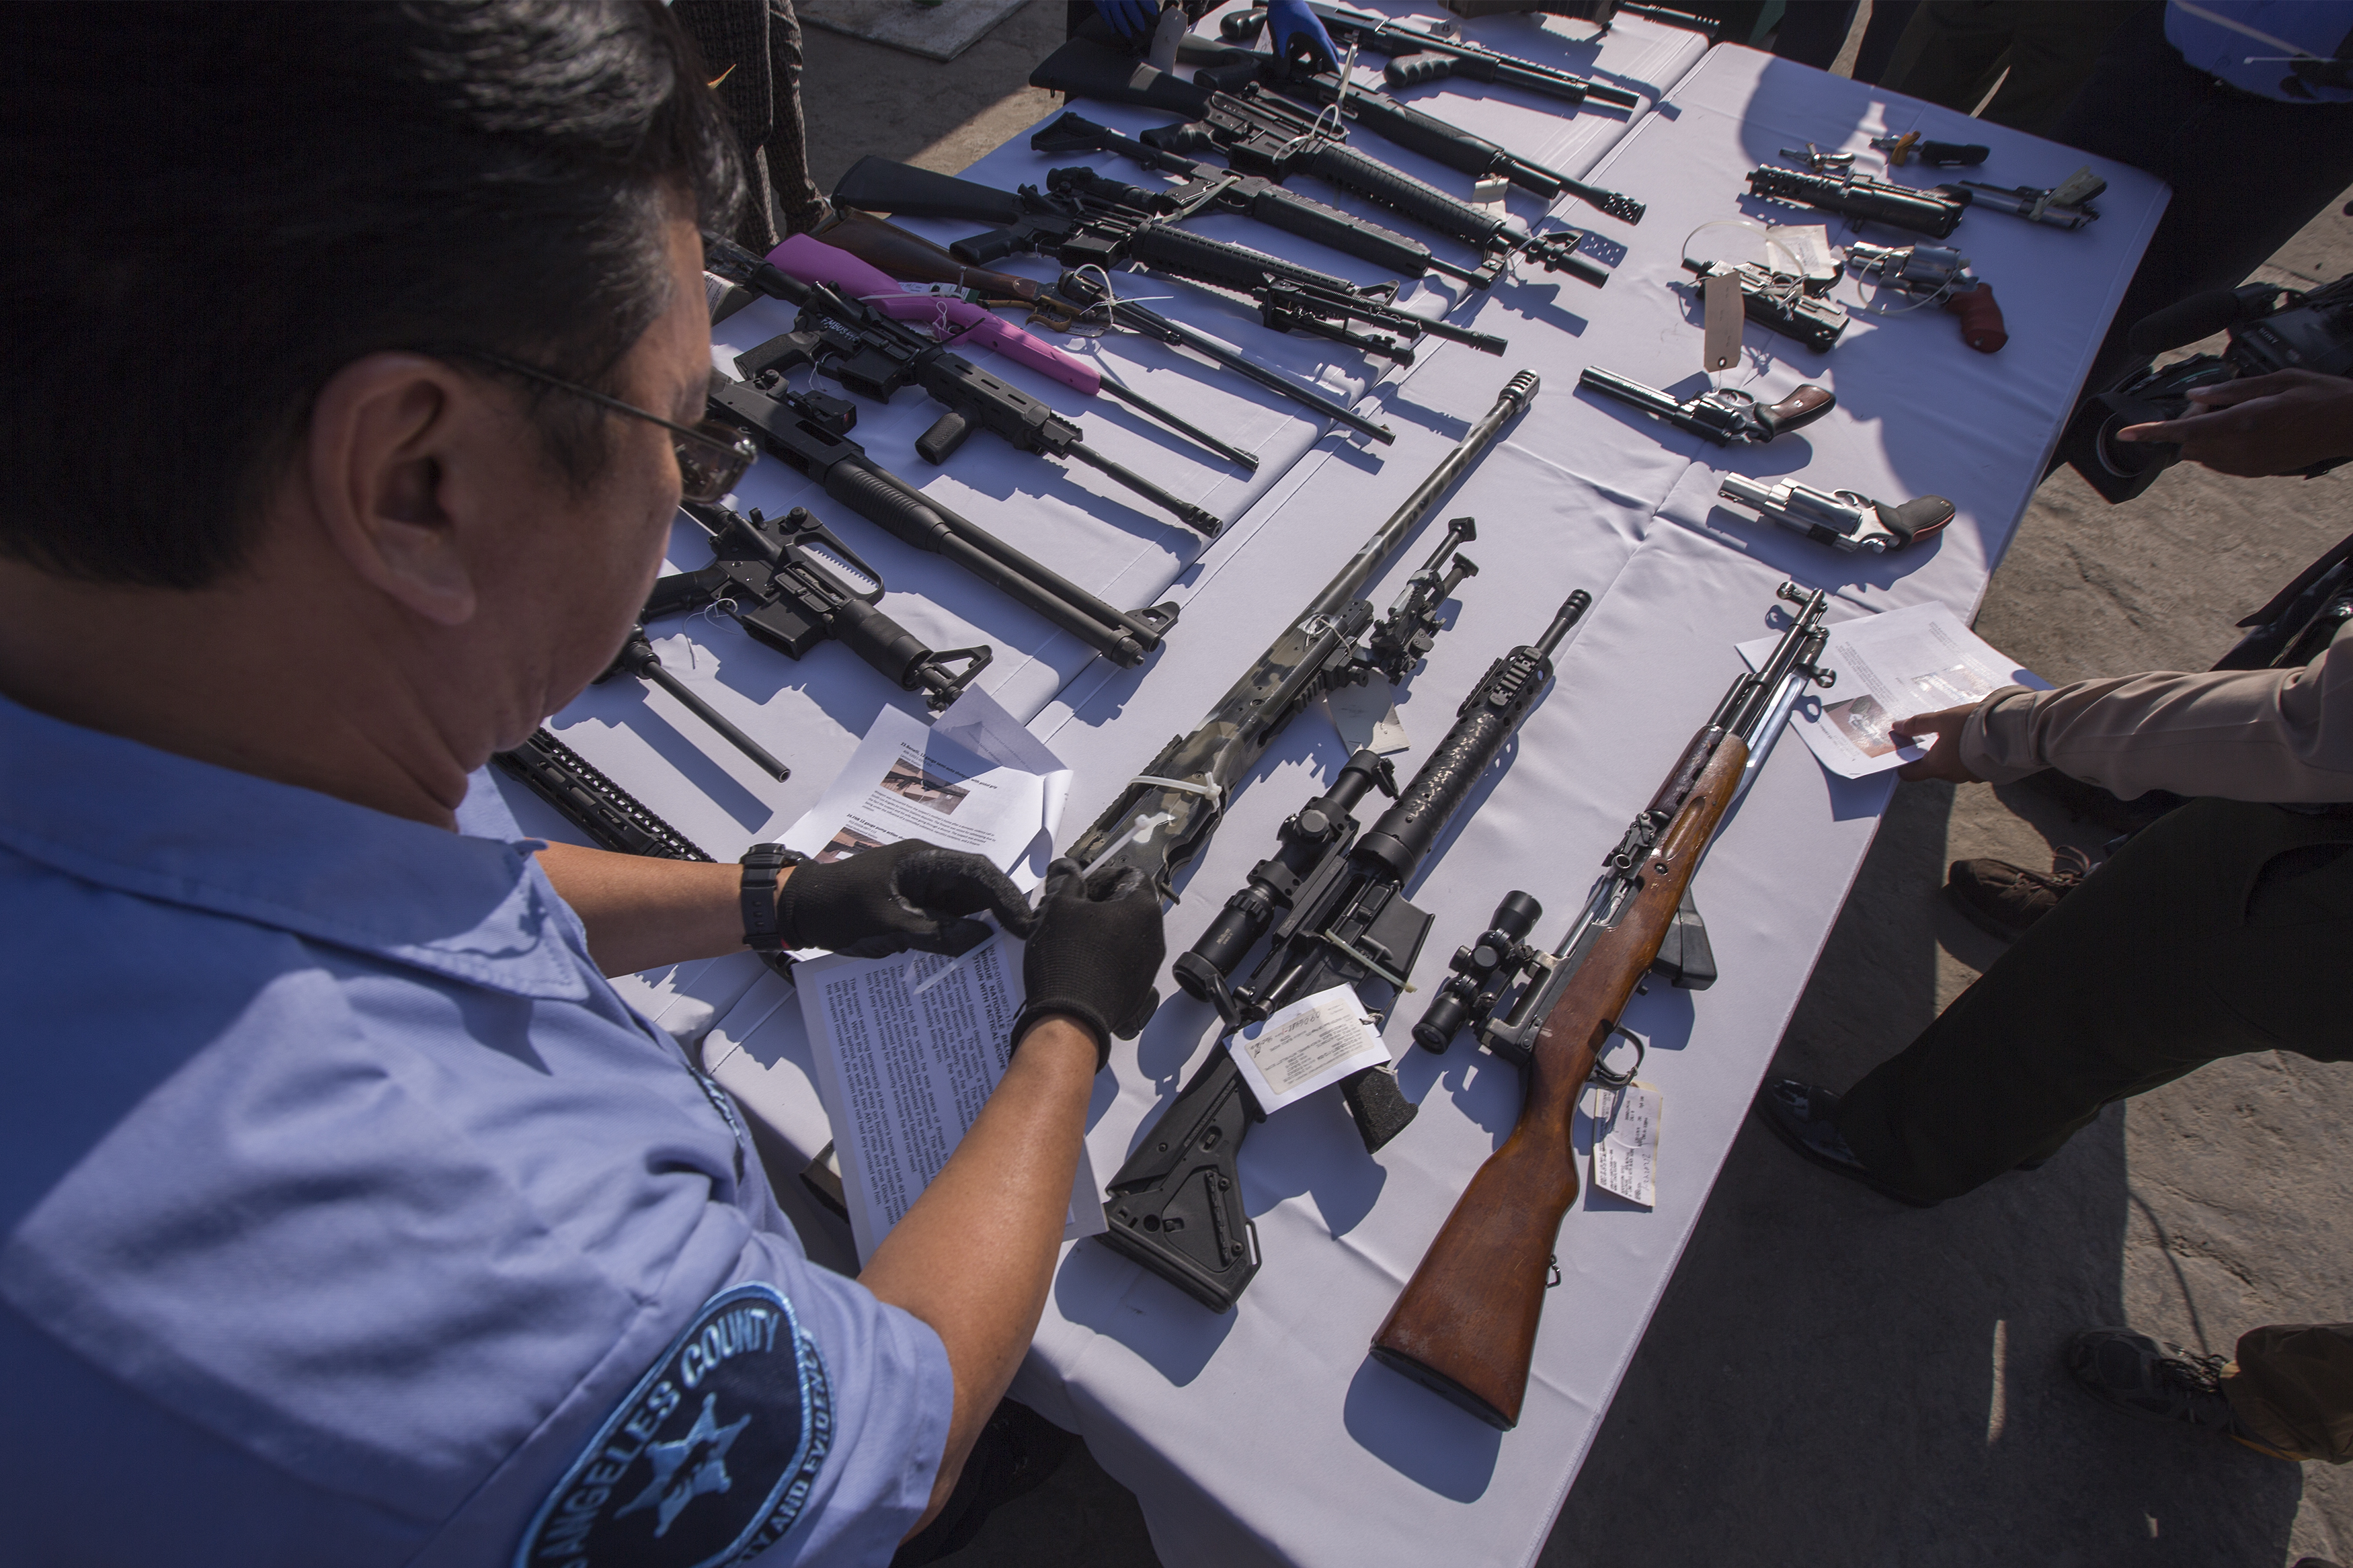 RANCHO CUCAMONGA, CA - JULY 19: Deputies handle some of approximately 3,500 confiscated guns to be melted down at Gerdau Steel Mill on July 19, 2018 in Rancho Cucamonga, California. The weapons were seized in criminal investigations, probation seizures and gun buyback events, and will be recycled into steel rebar for the construction of highways and bridges. (Photo by David McNew/Getty Images)